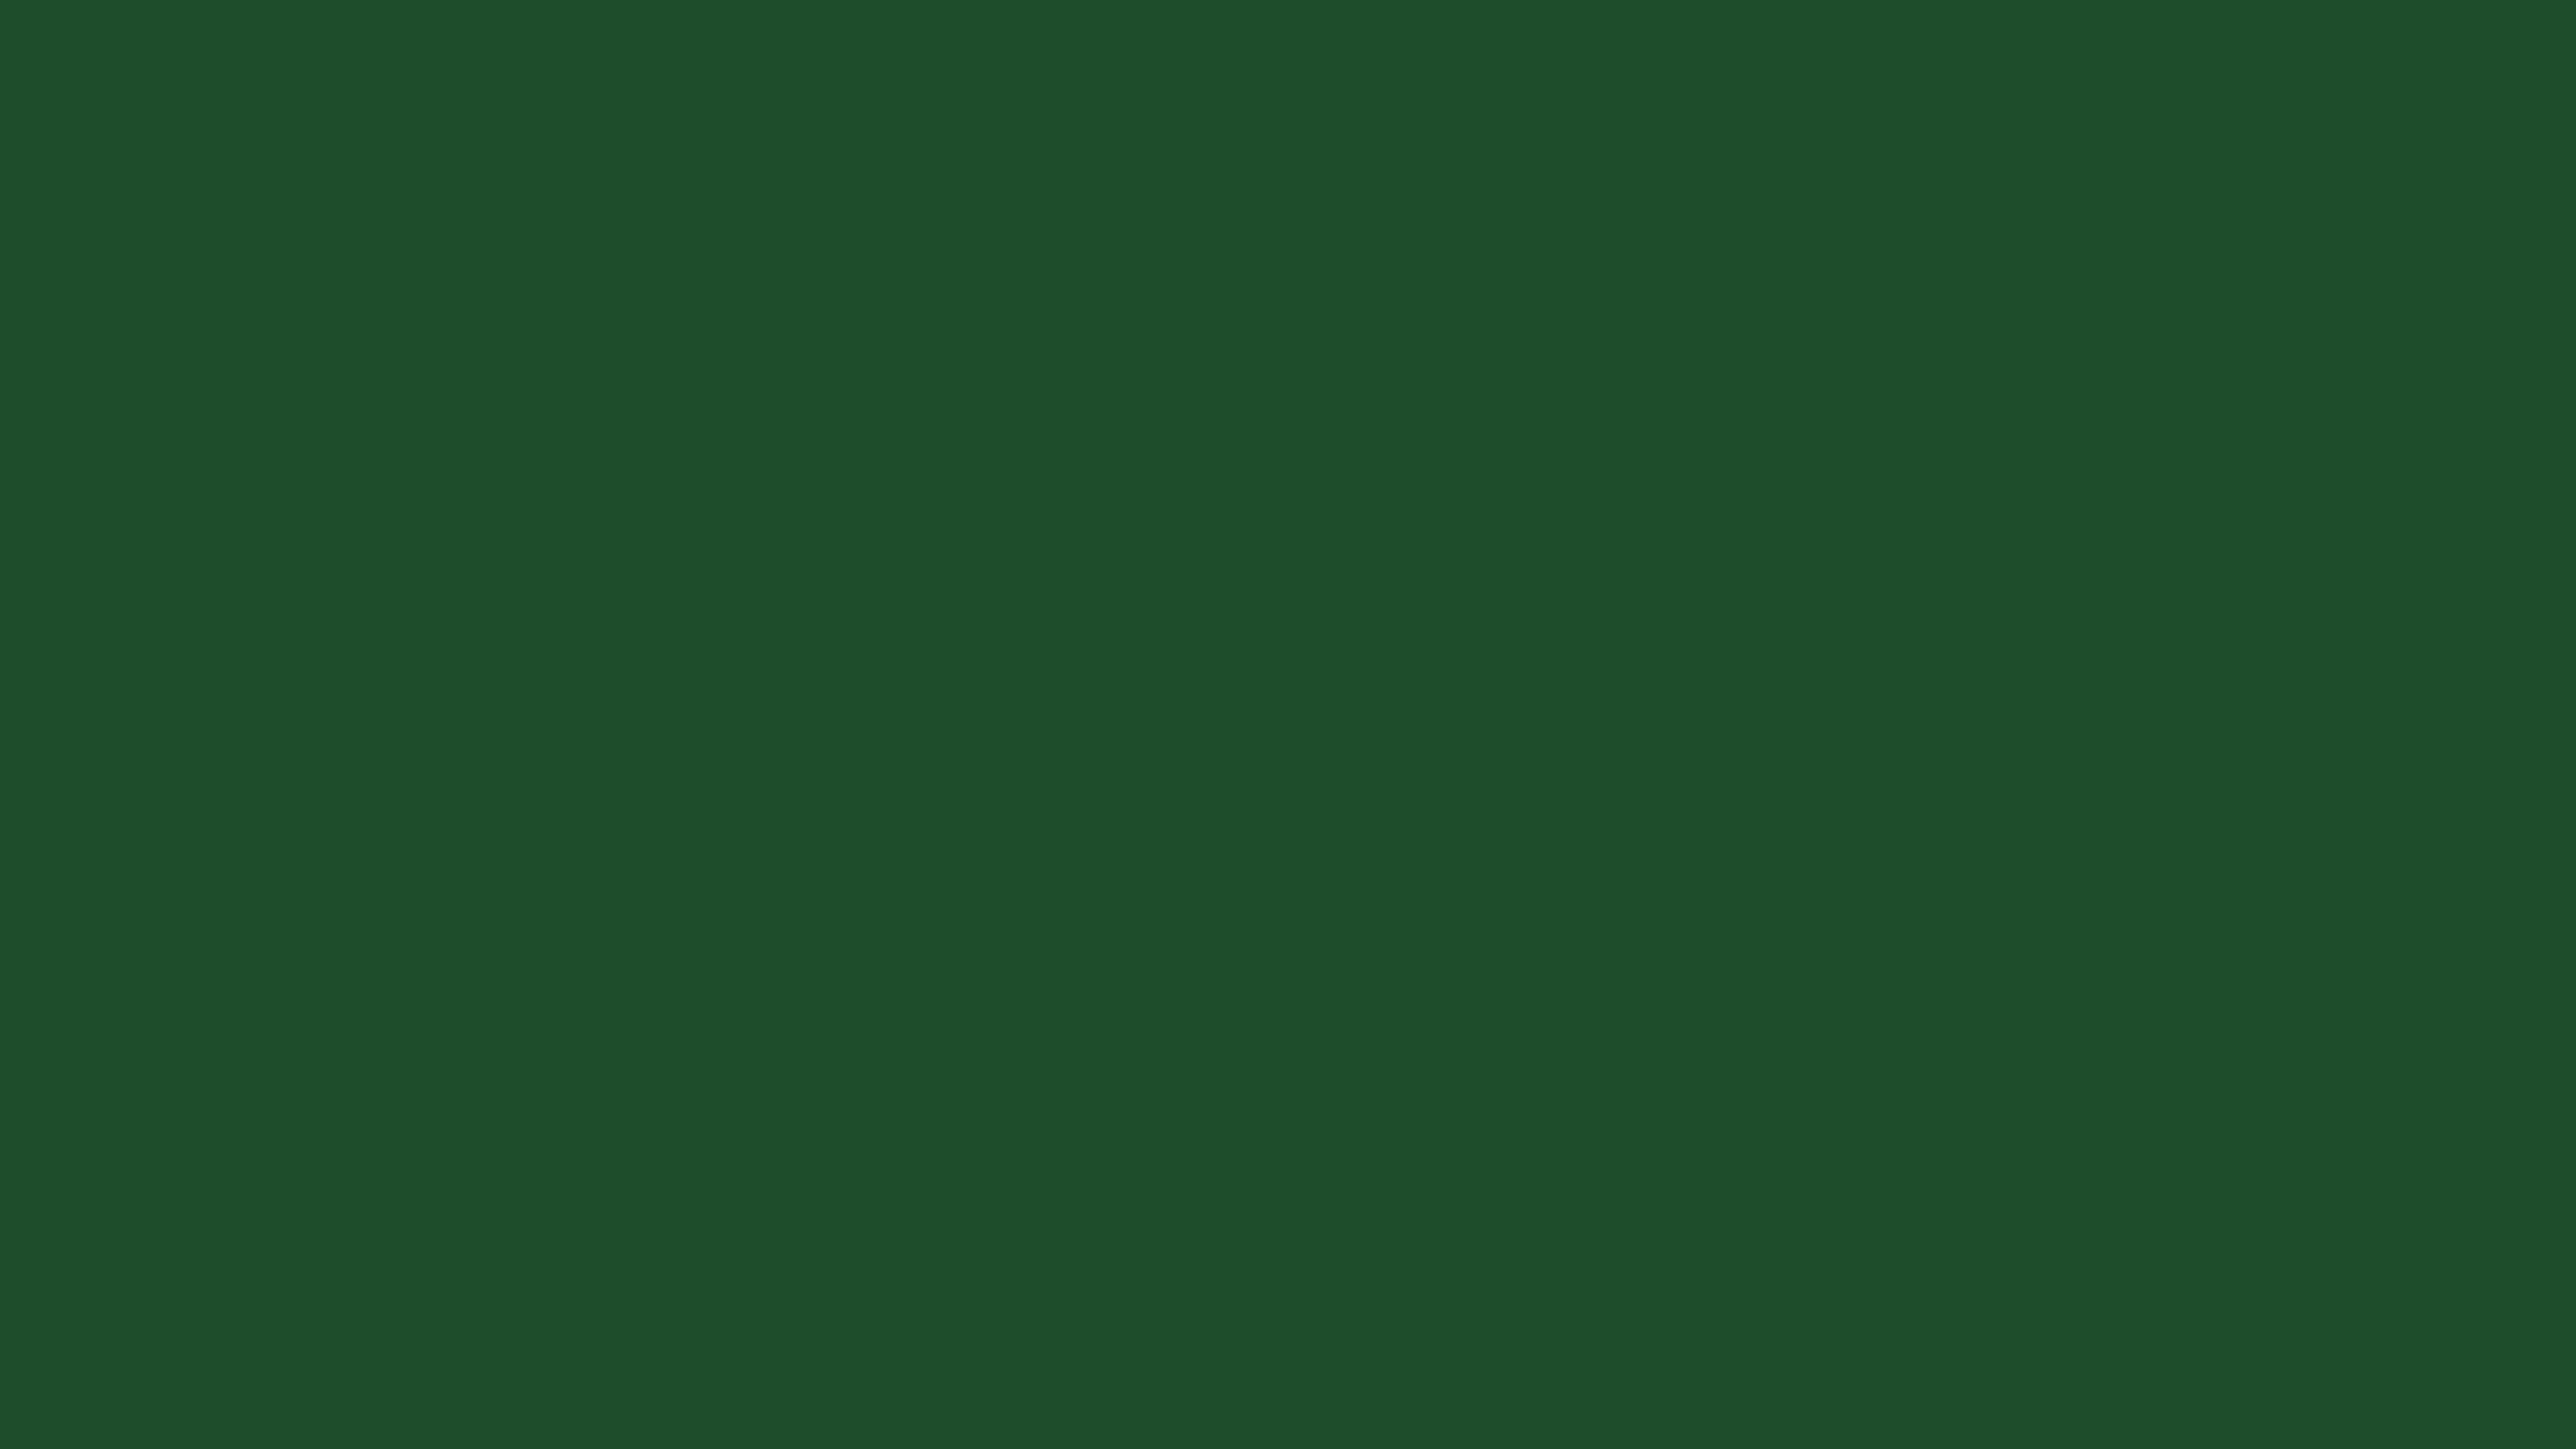 3840x2160 Cal Poly Green Solid Color Background